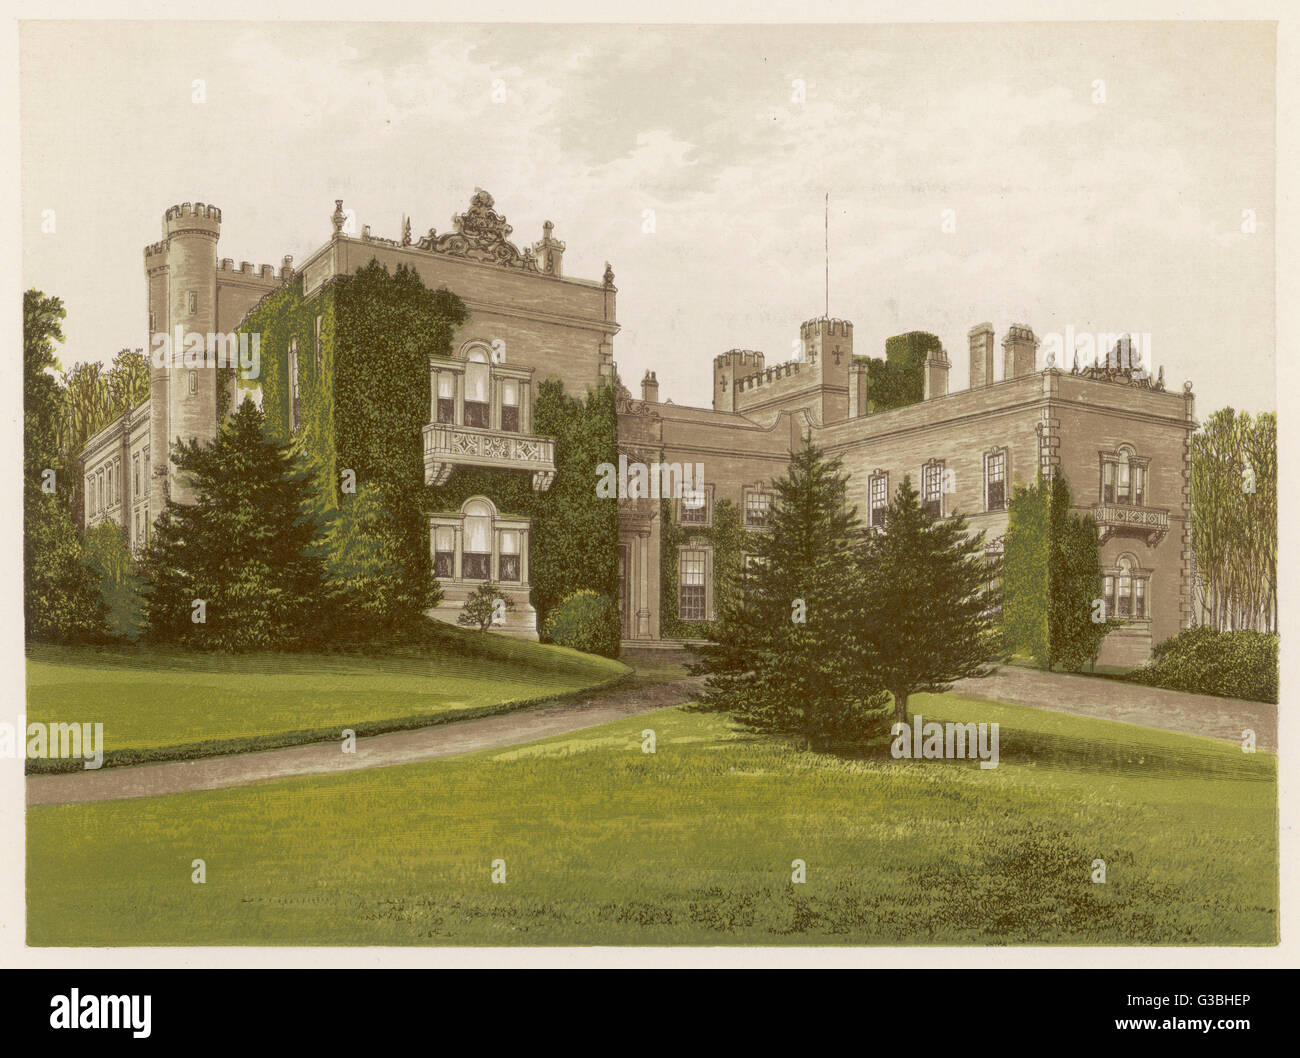 Aske Hall, Yorkshire, a notable stately home.        Date: 1879 - Stock Image